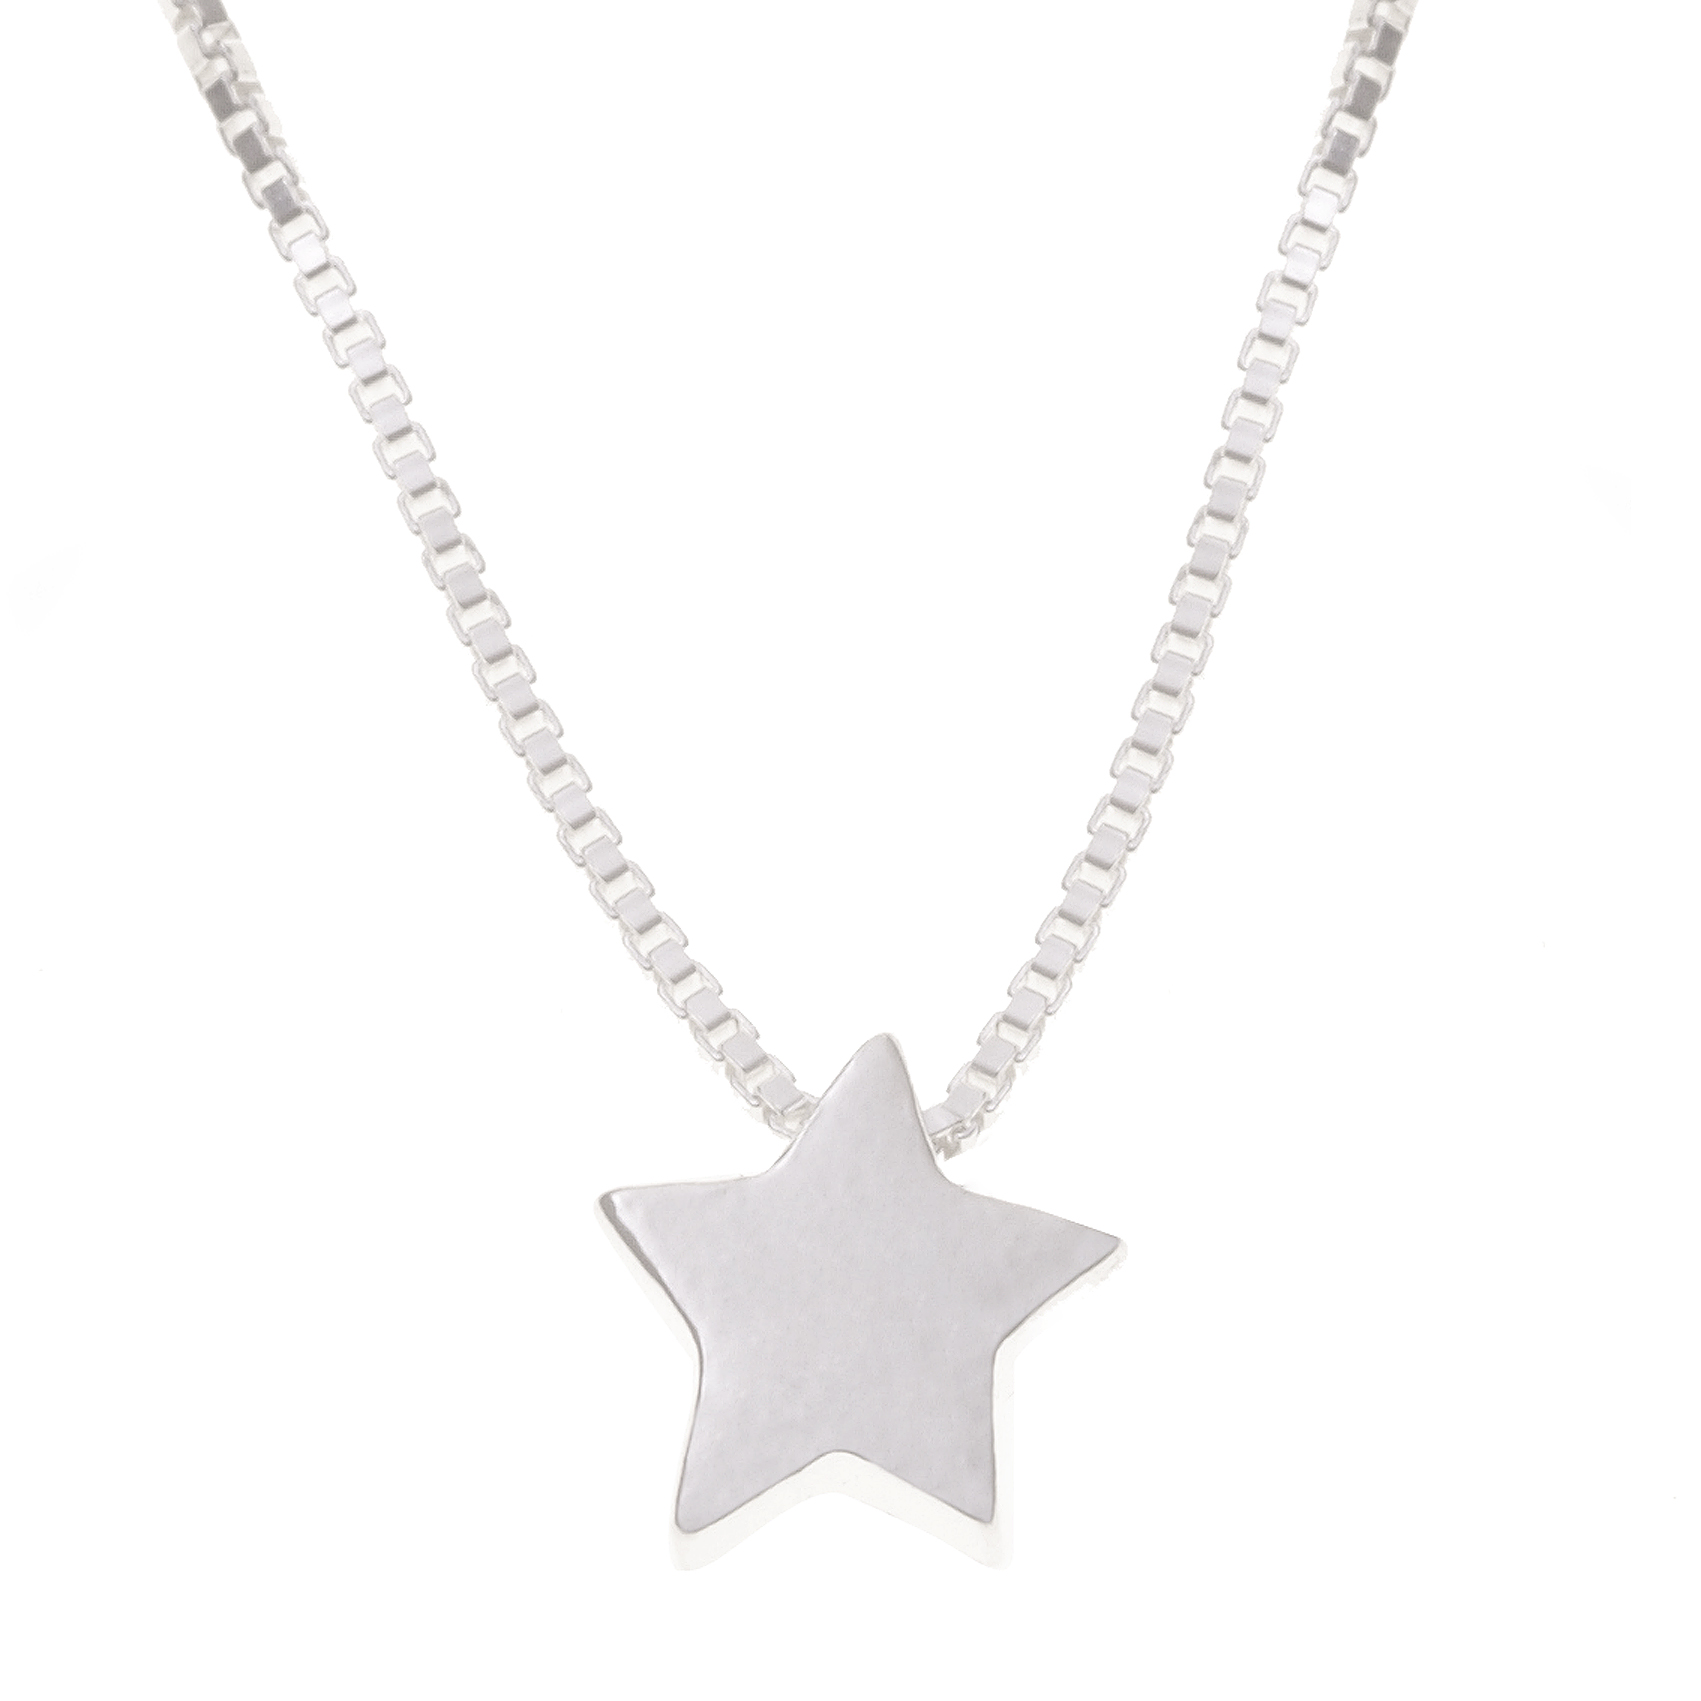 star oliver jewellery necklace silver bonas